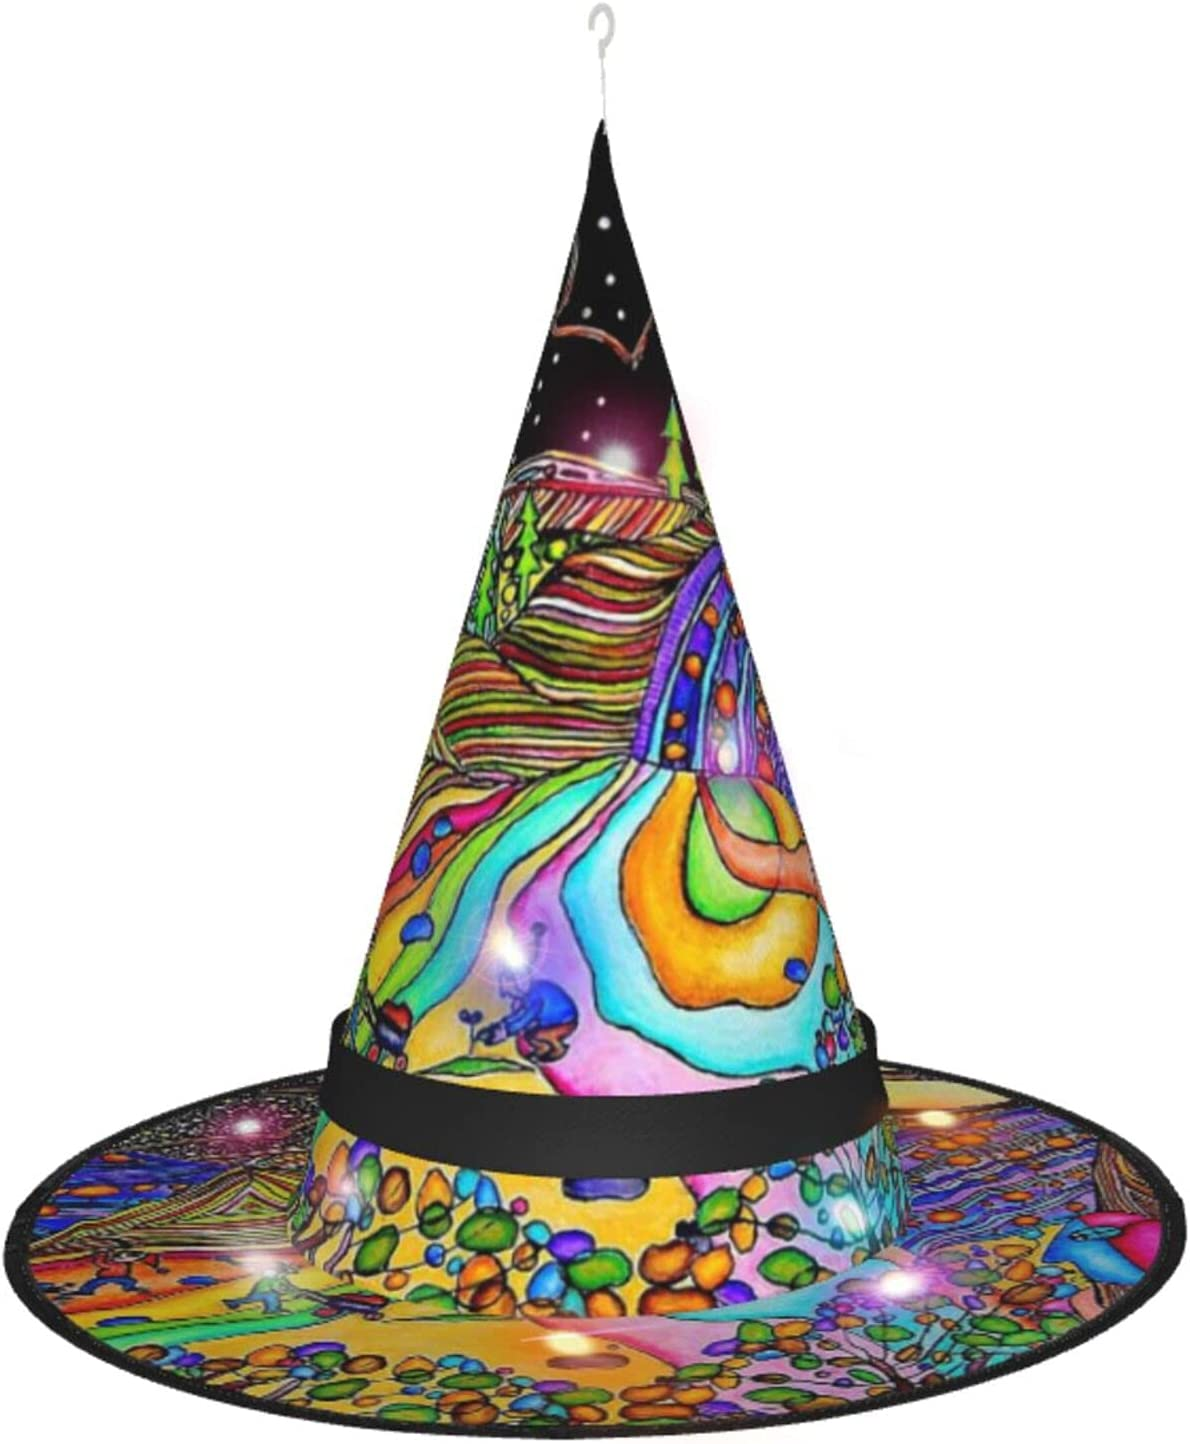 Magical Psychedelic Trippy Art 4 years warranty Ranking TOP18 Halloween Hat Witch Party Decorat